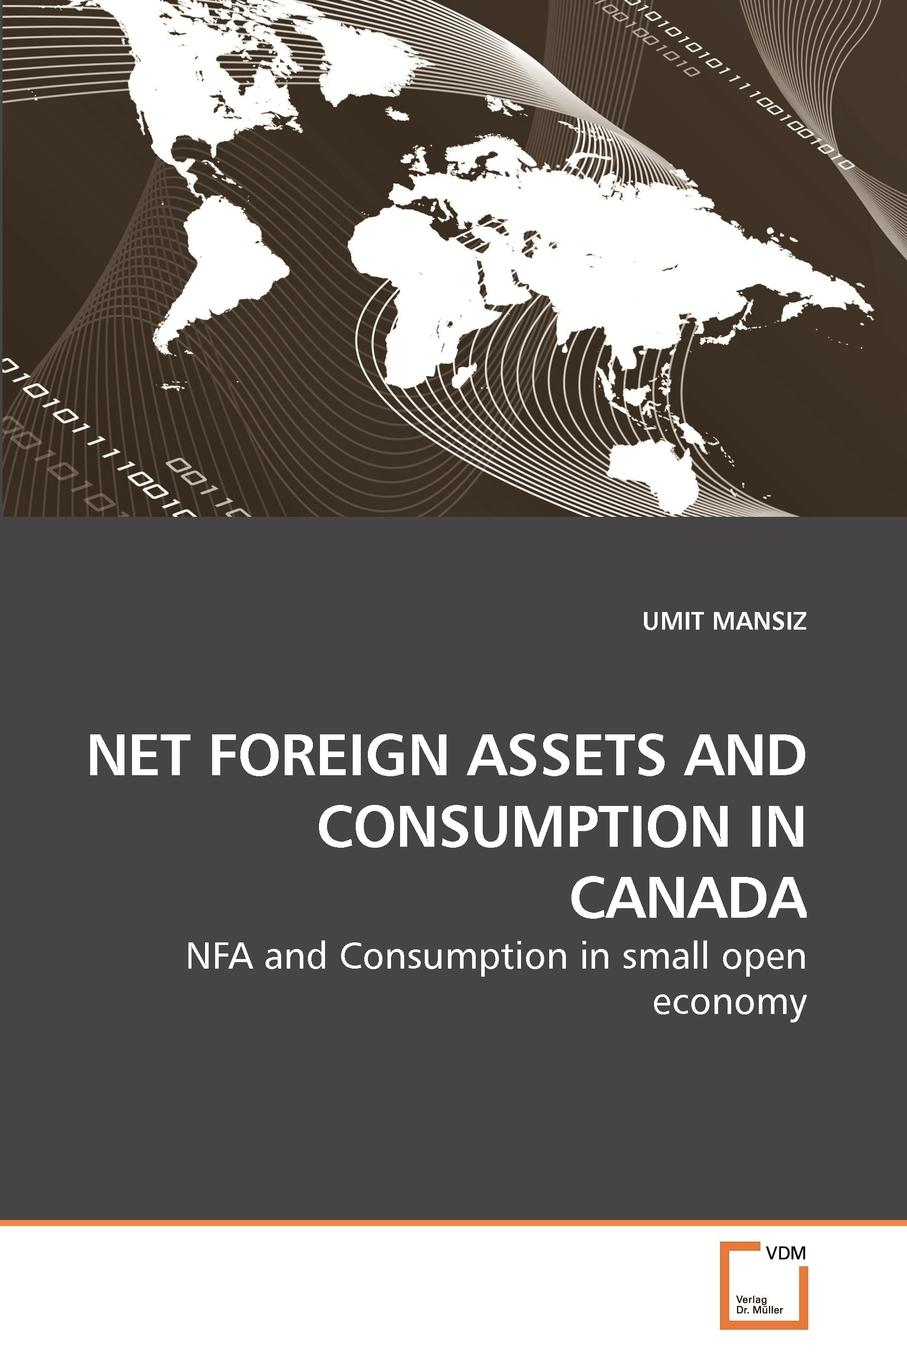 UMIT MANSIZ NET FOREIGN ASSETS AND CONSUMPTION IN CANADA frozen assets